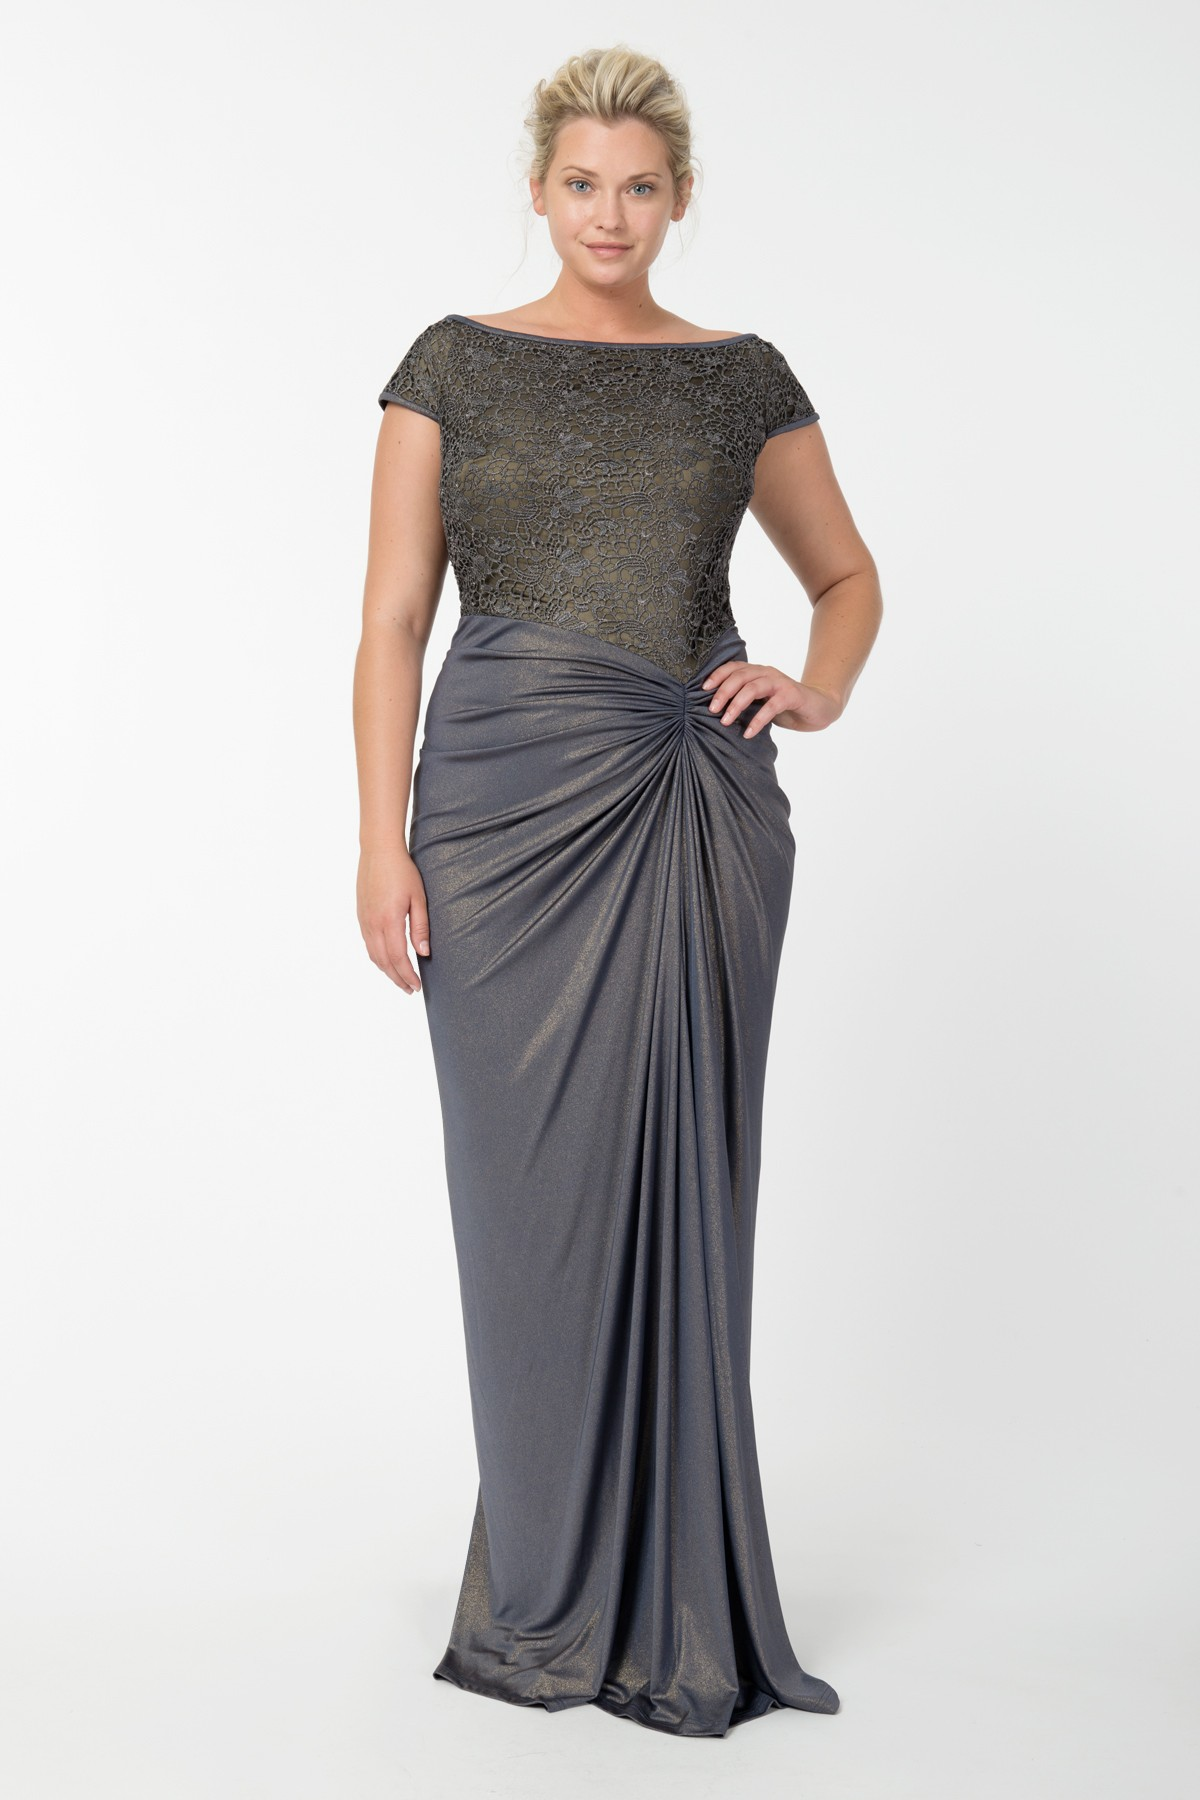 Plus size dresses formal occasions - Style Jeans